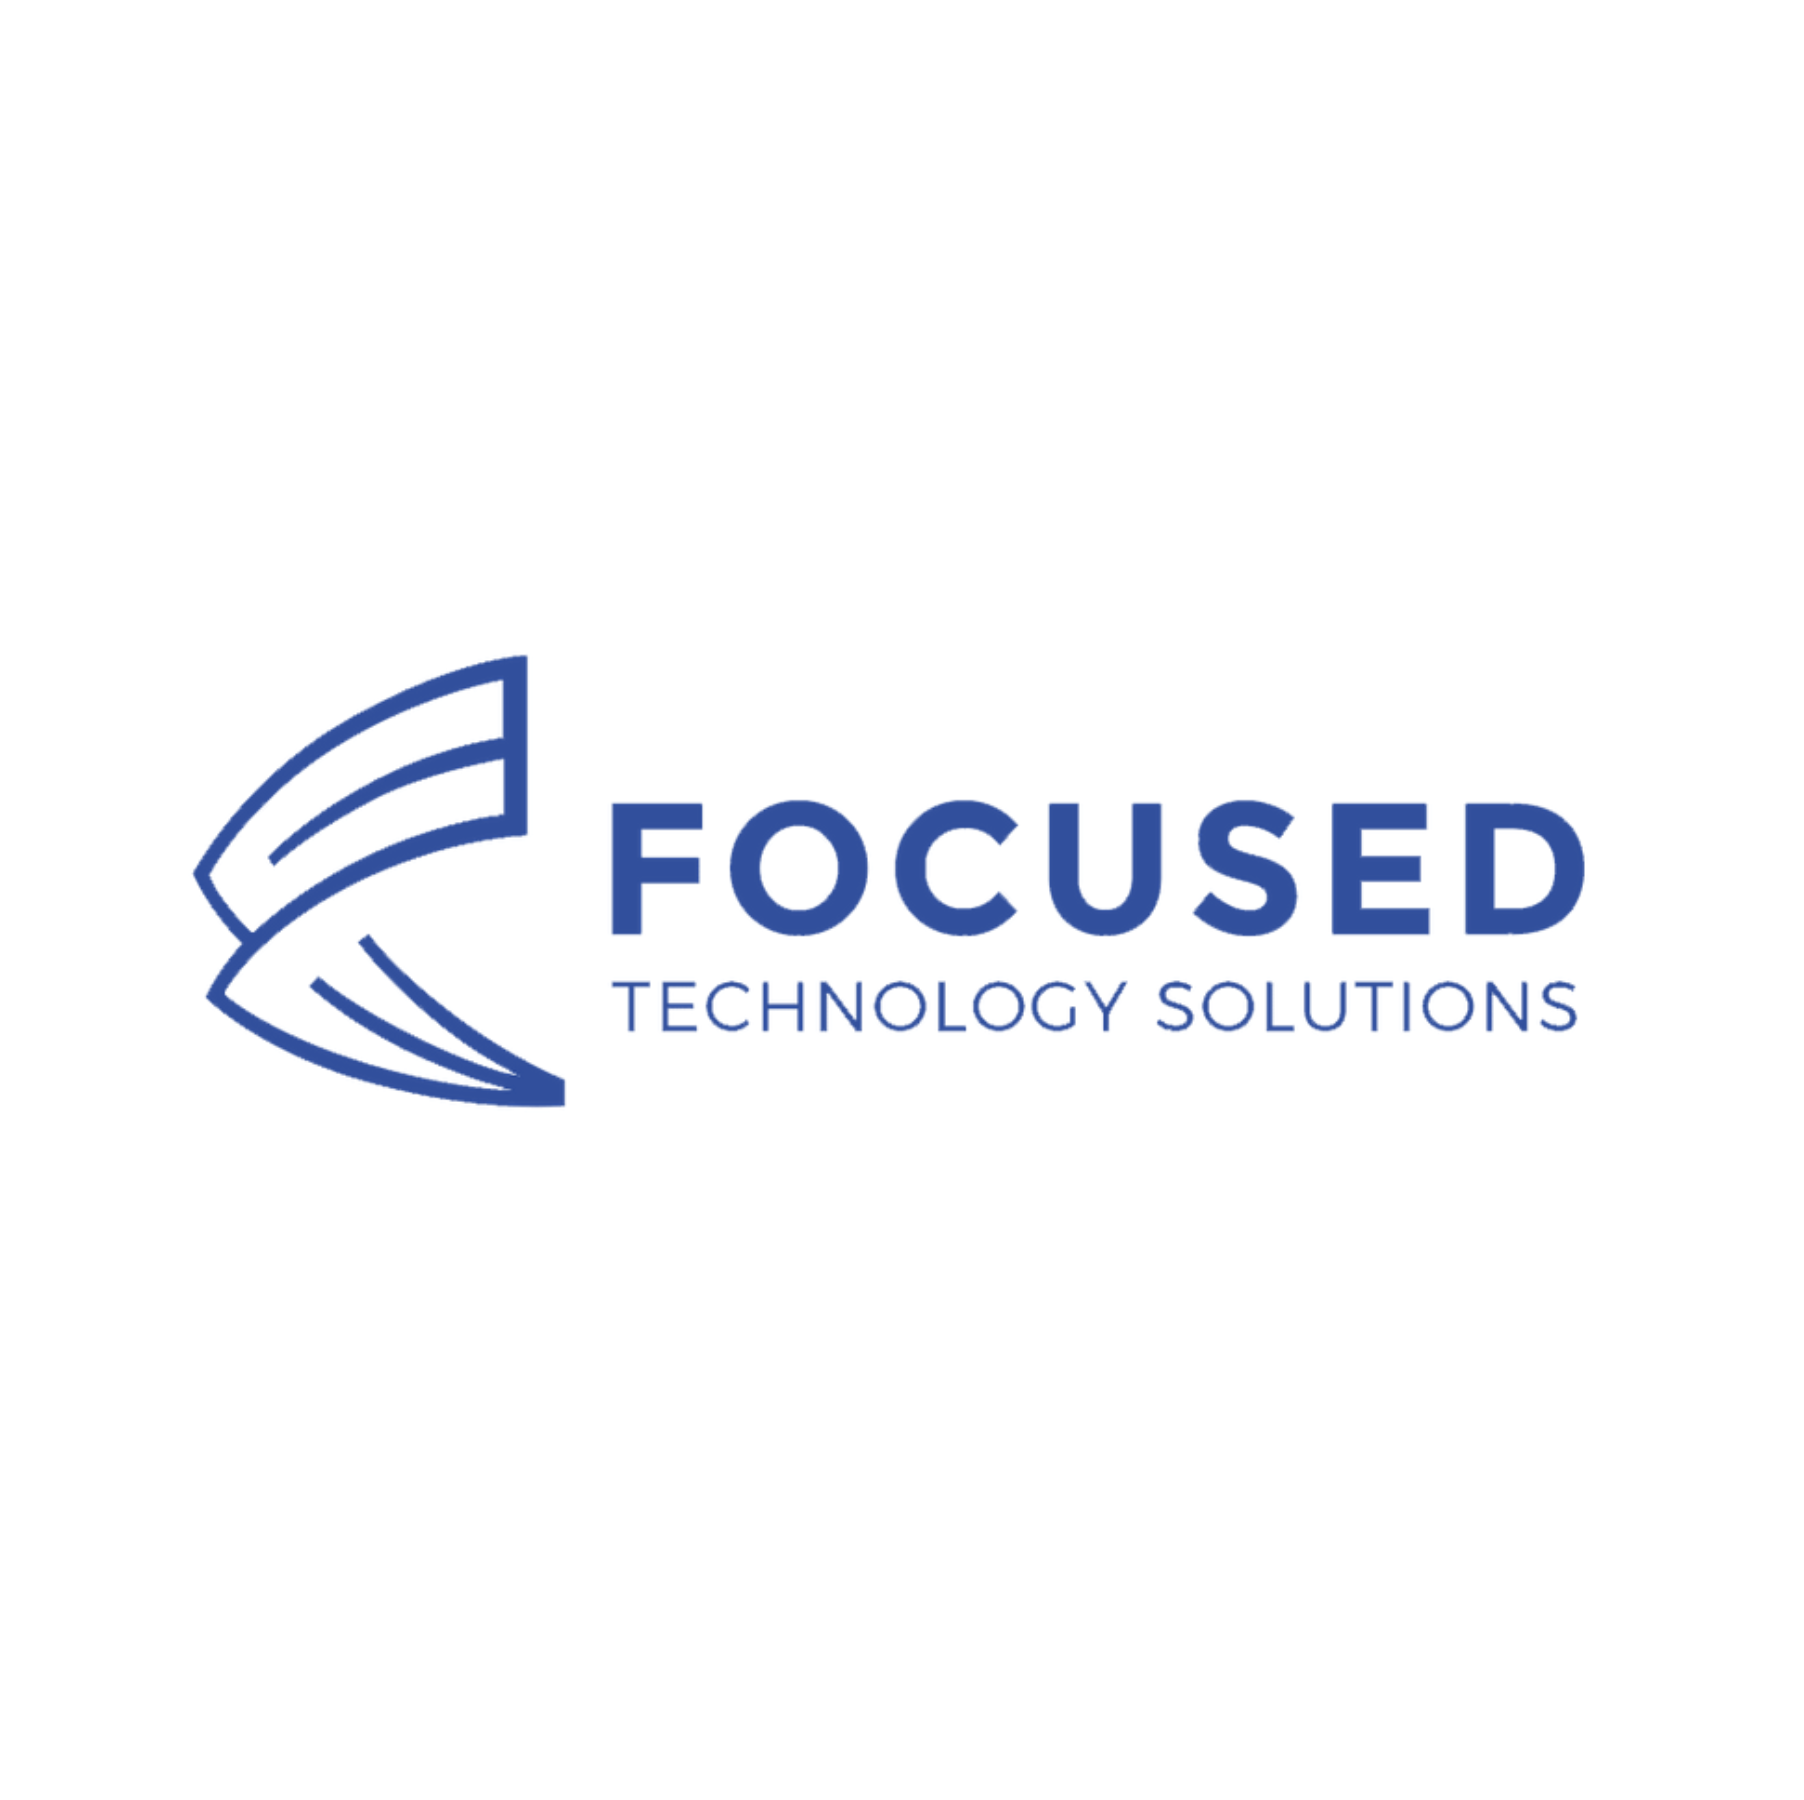 Focused Technology Solutions Announces Battery-Operated EclipEase Nearing Launch